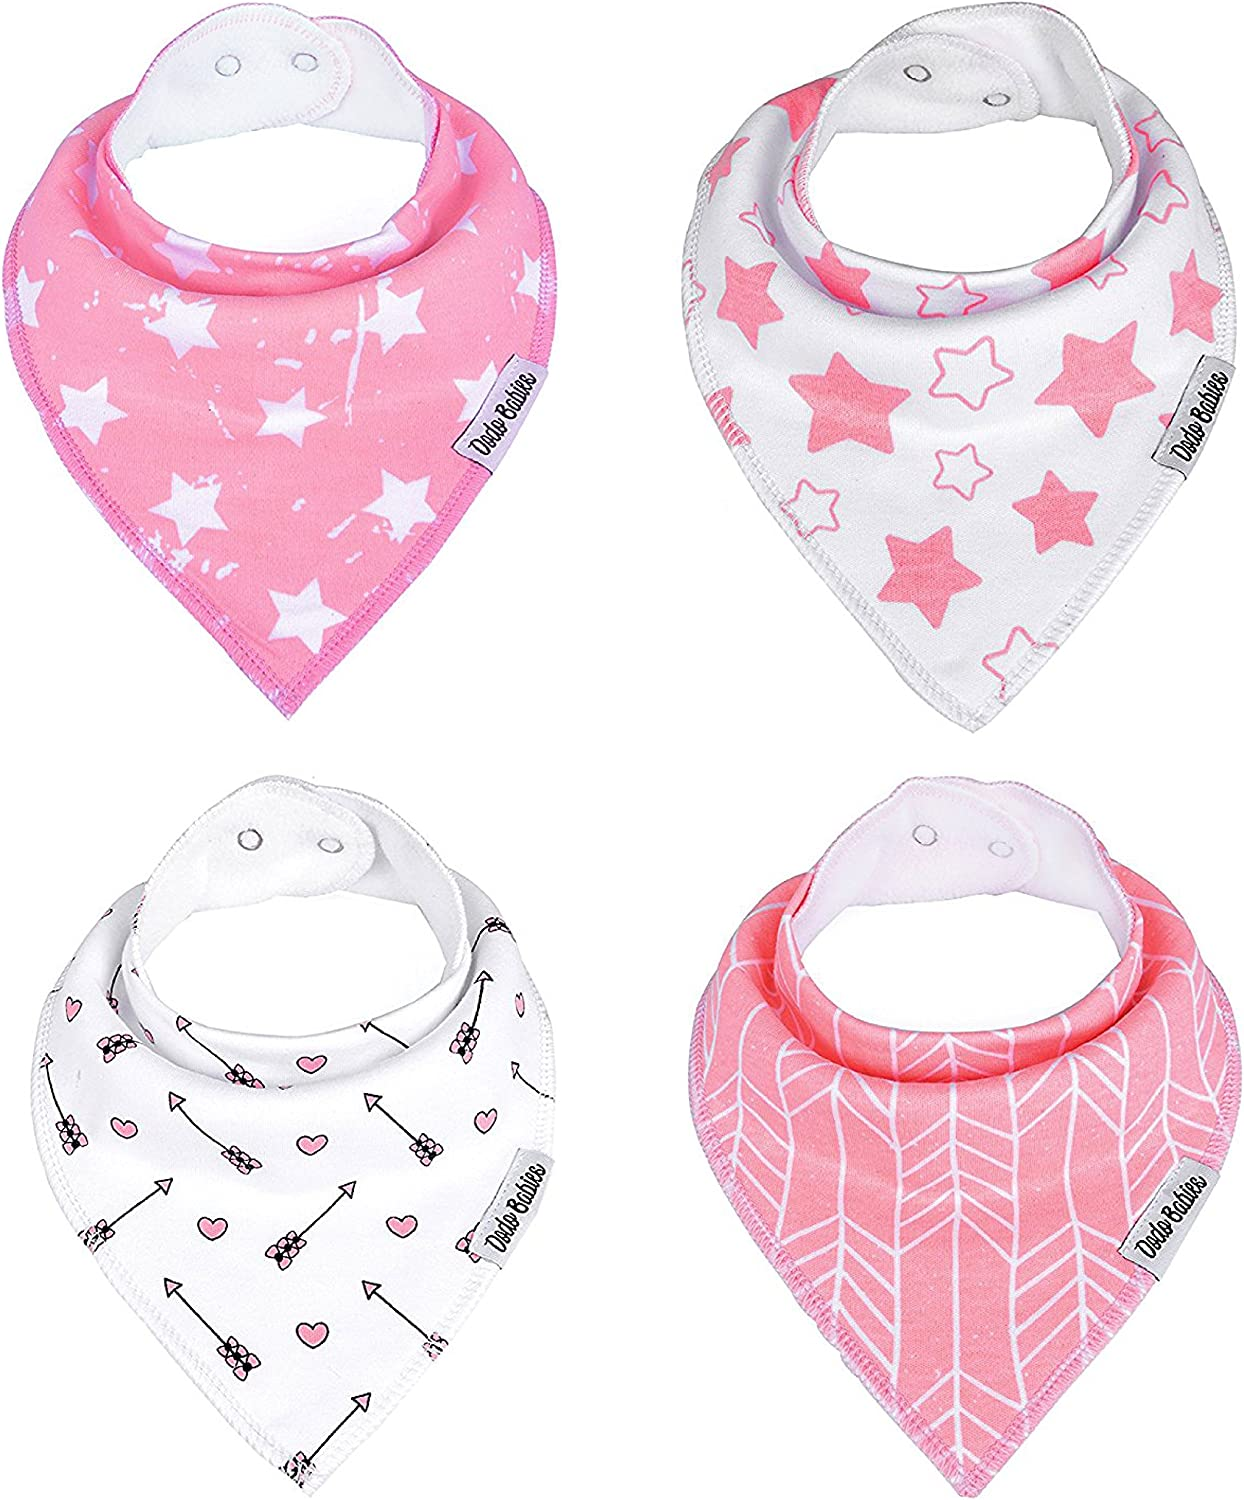 Baby/Â/Bandana Drool/Â/Bibs by Dodo Babies Registry Gift Pacifier Case In a Gift Bag Pack of 8 Premium Quality For Boys or Girls Excellent Baby Shower 2 Pacifier Clips